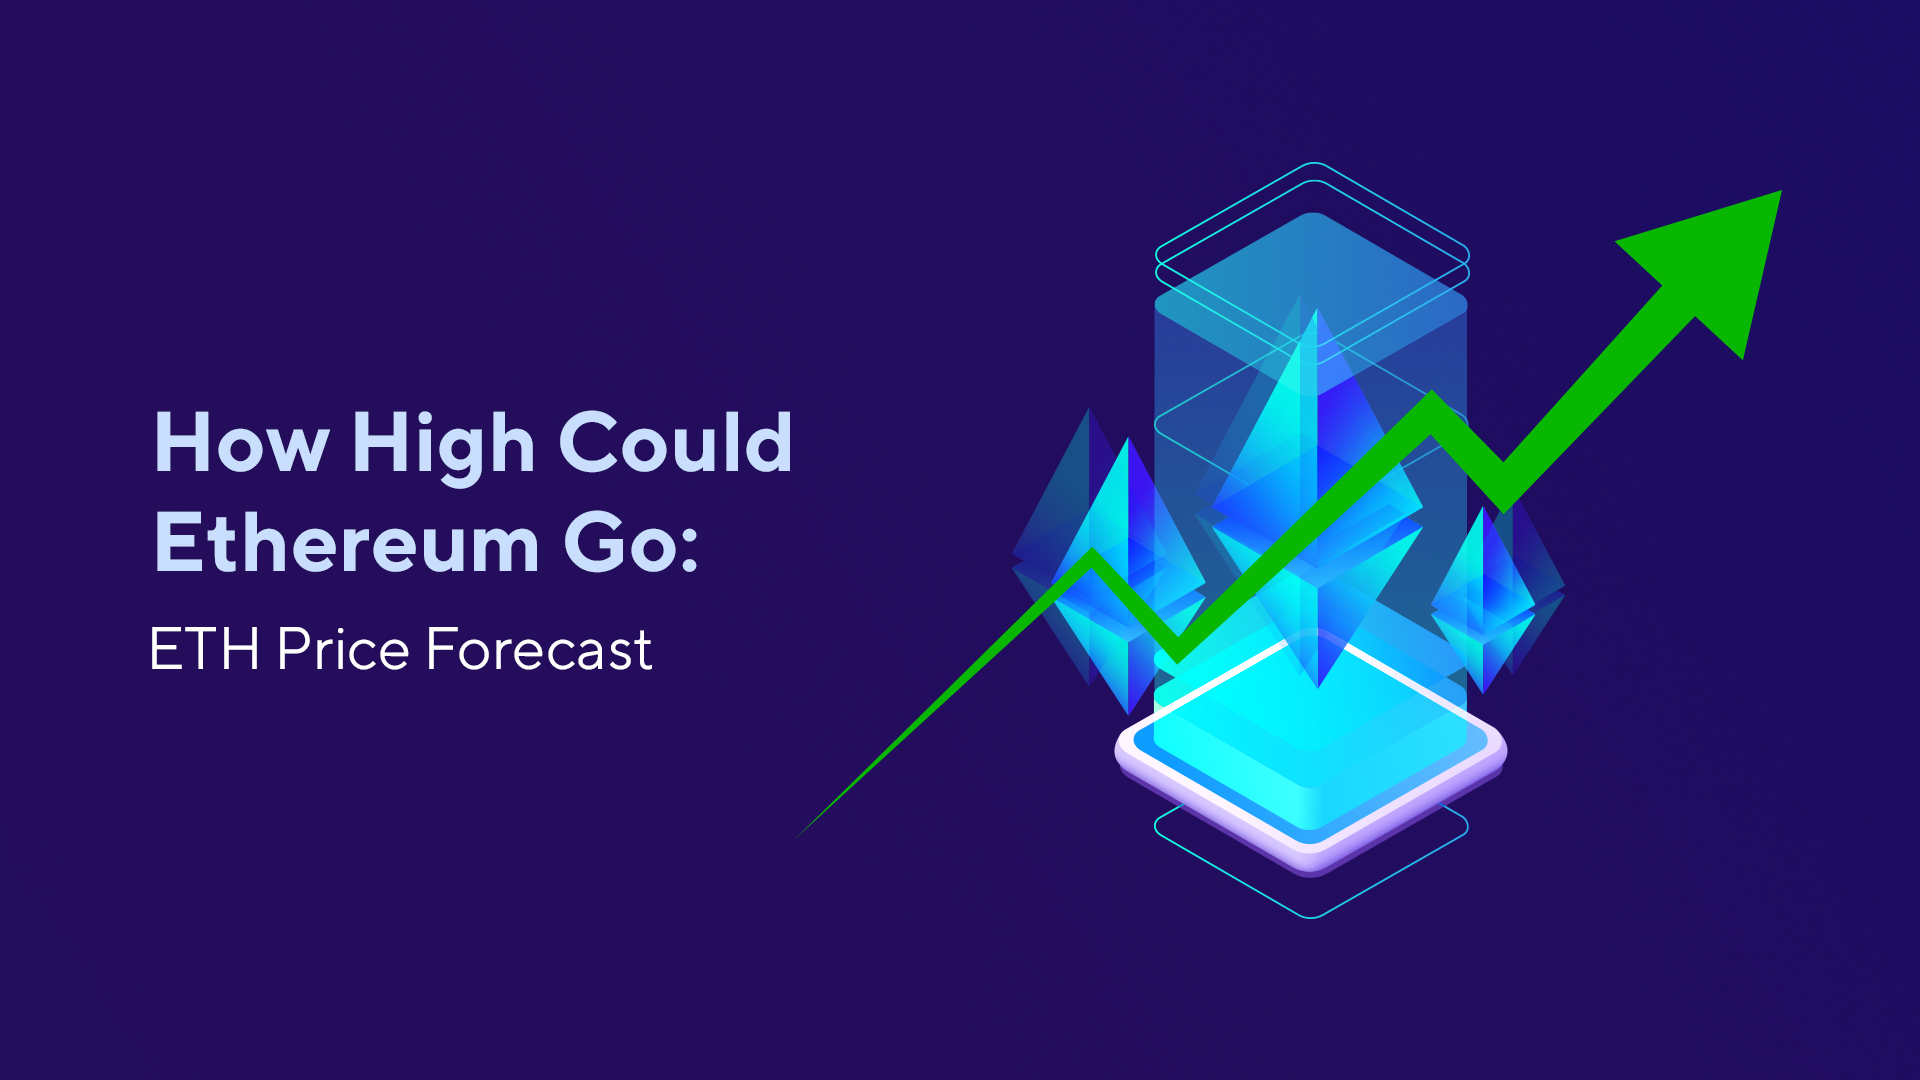 How High Could Ethereum Go: ETH Price Forecast